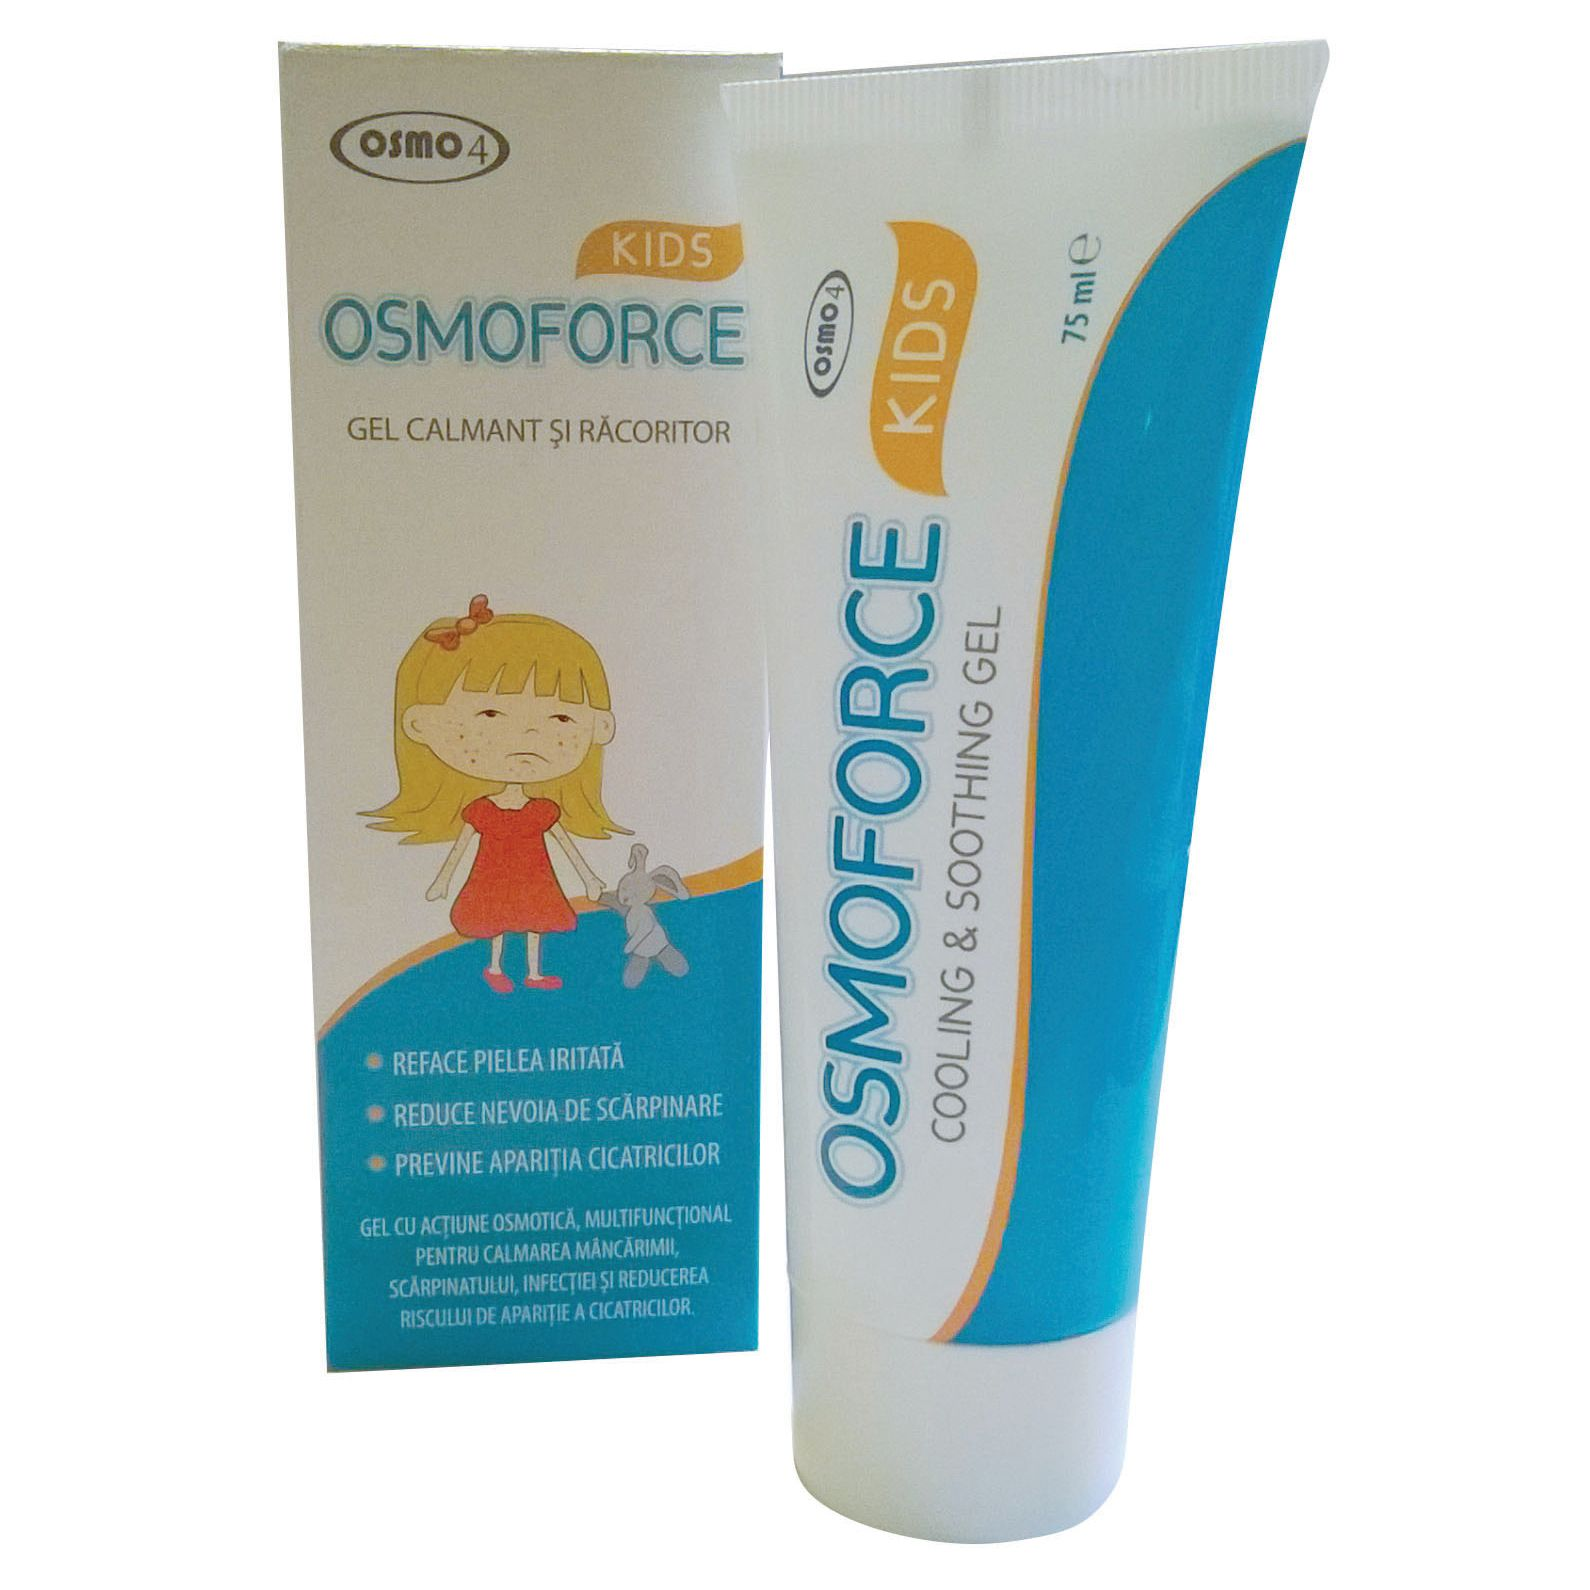 Osmoforce gel calmant si racoritor, 75 ml, Osmo